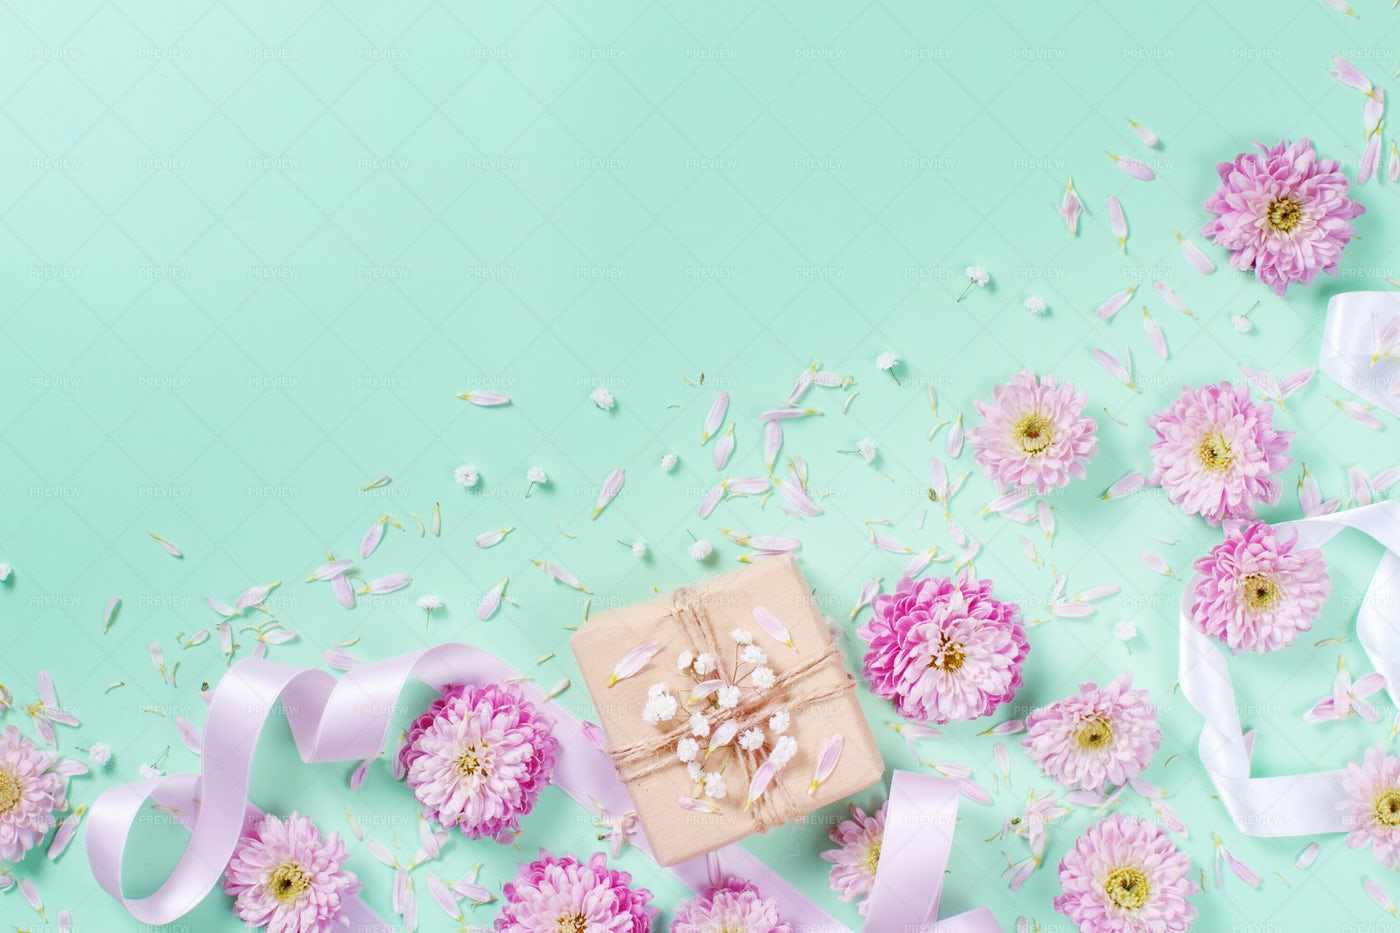 Pink Flowers With Gift Box Background: Stock Photos